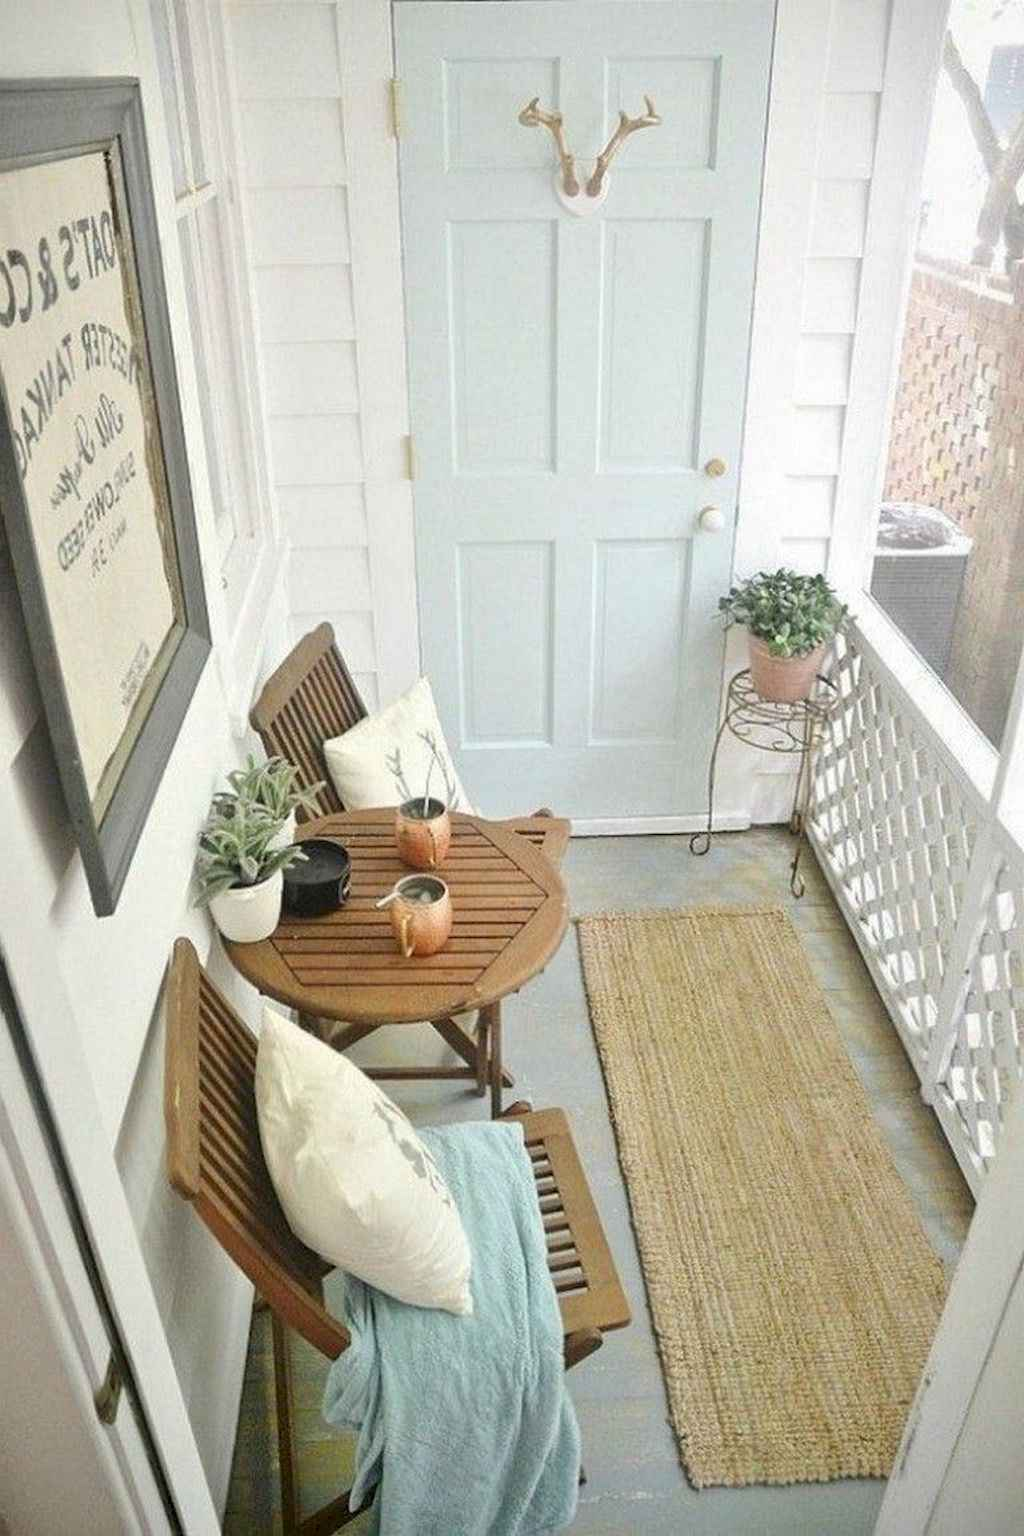 Beautiful First Home Decorating Ideas On A Budget: 47 Cheap And Easy First Apartment Decorating Ideas On A Budget